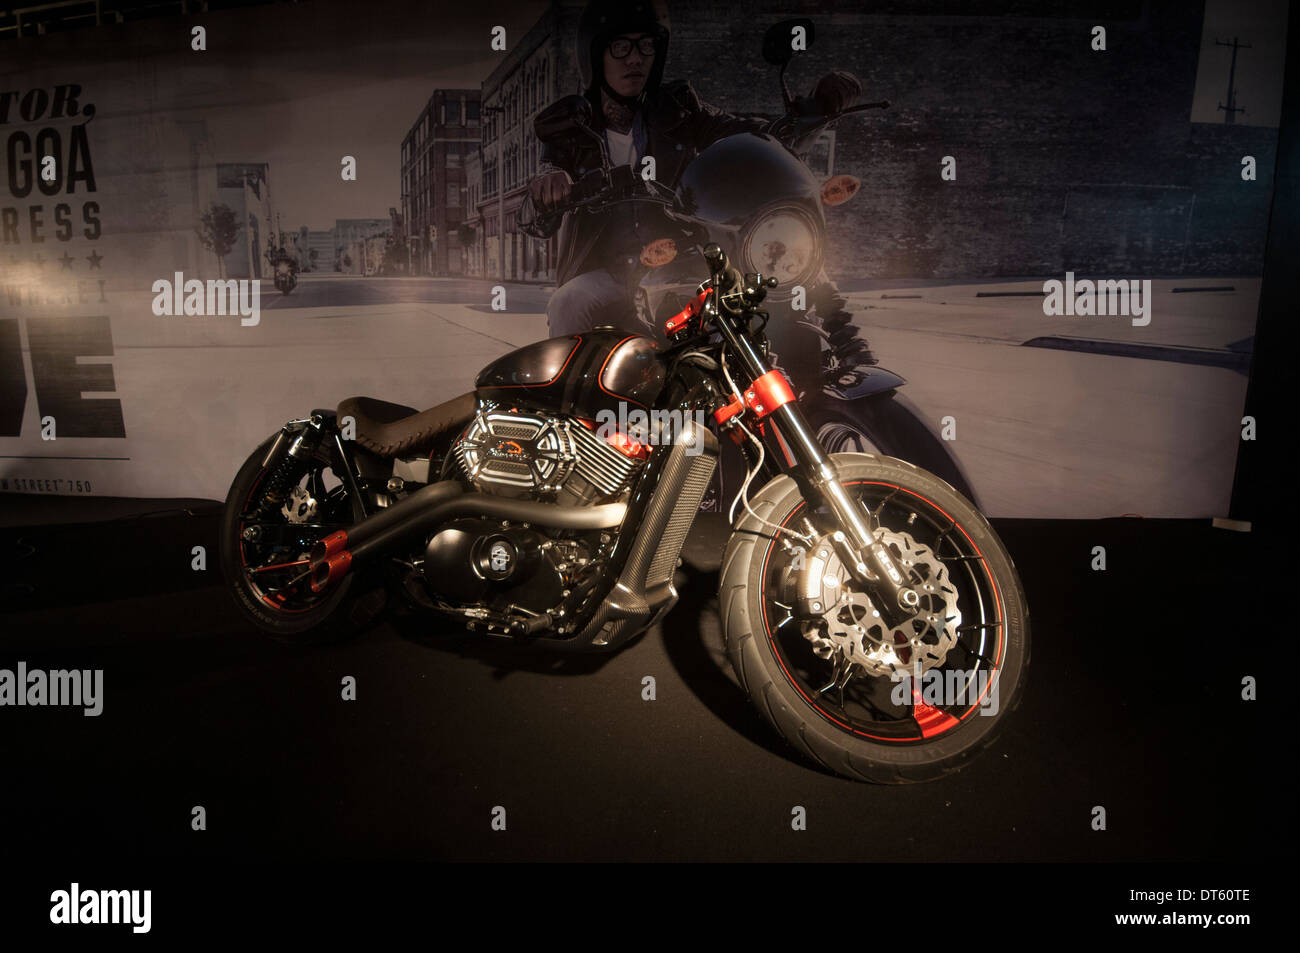 Harley Davidson 750 Cc Street Bike Launched At The India Bike Week Held At Vagator Beach Goa Which Is A Festival Of Superbikes